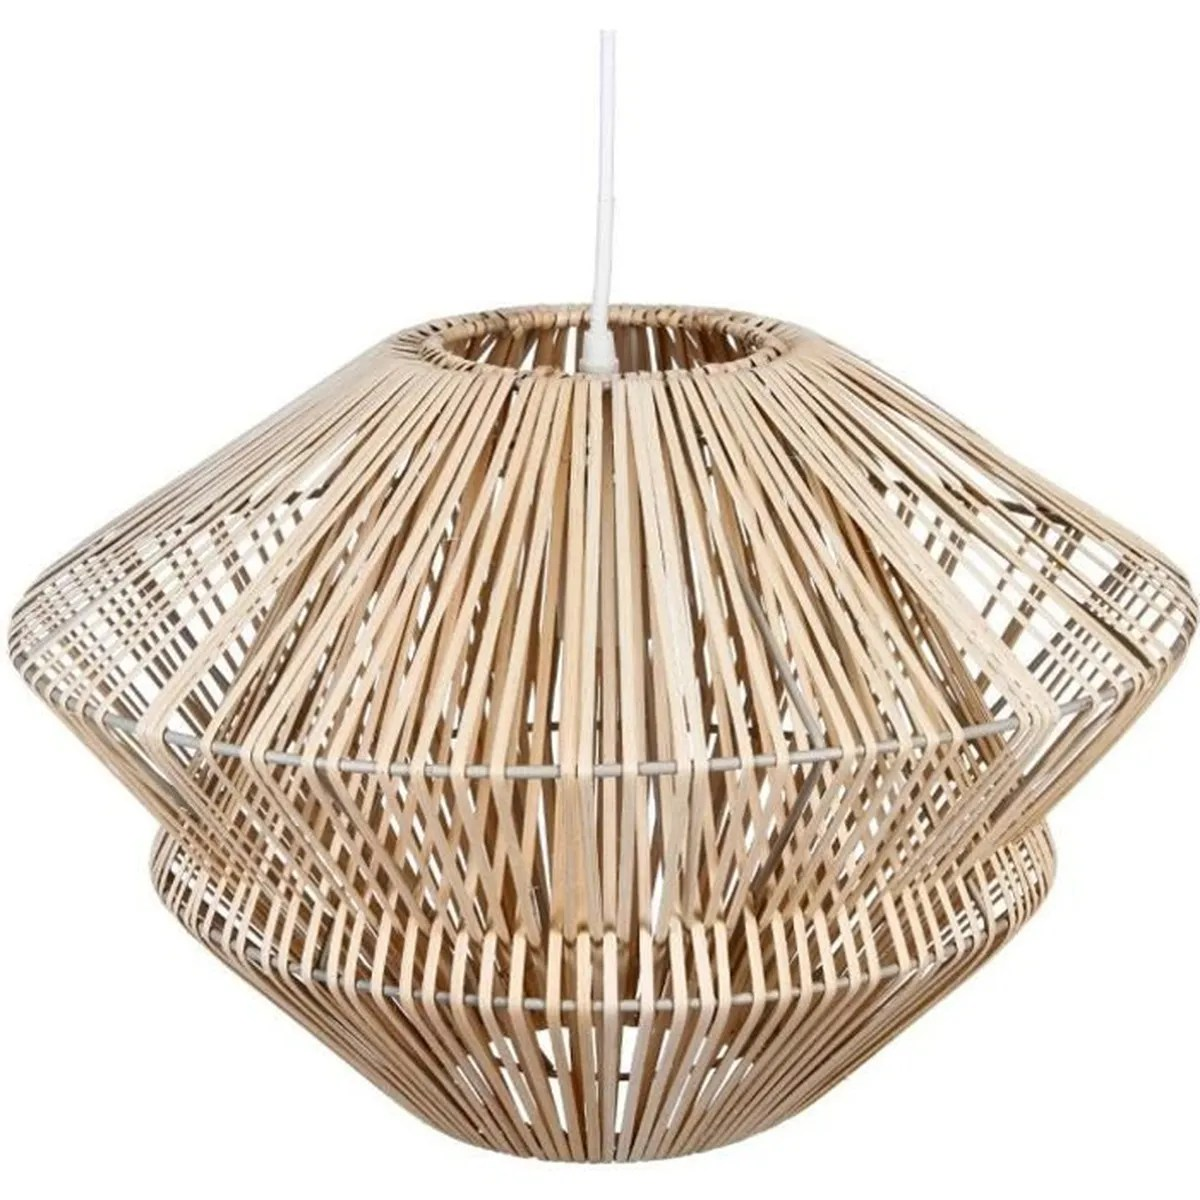 Plafonnier Bois Naturel Grande Suspension Lustre En Rotin Diamètre 48 Cm Bois Naturel